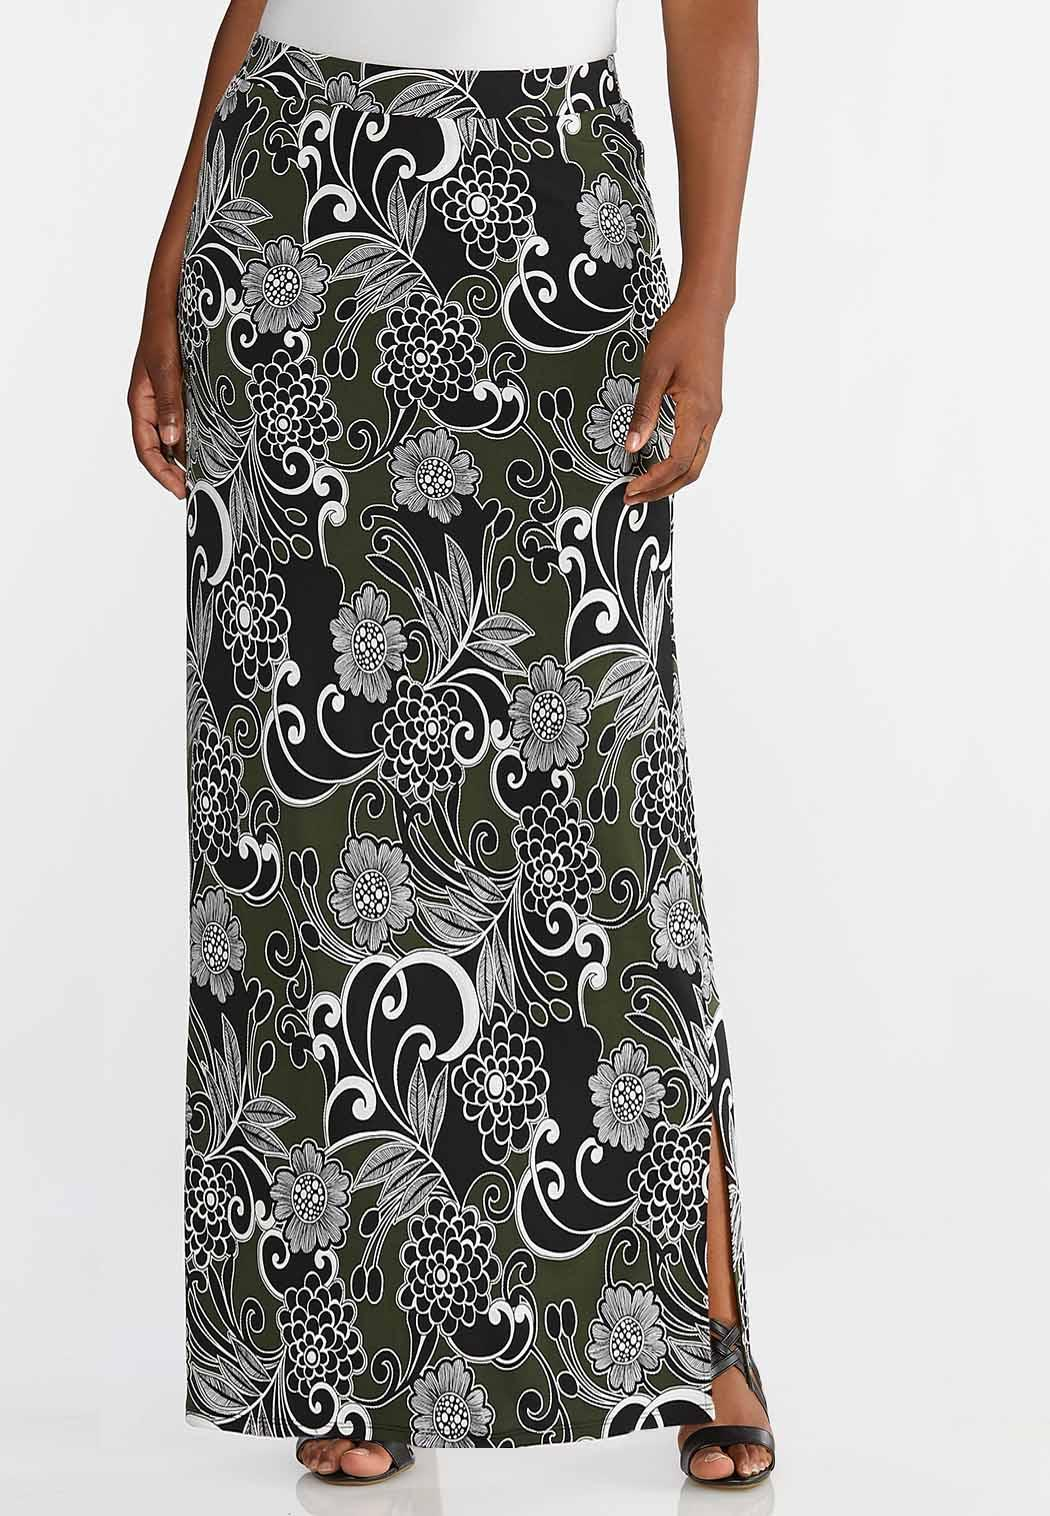 a3485efbd0 Plus Size Floral Puff Maxi Skirt Skirts Cato Fashions